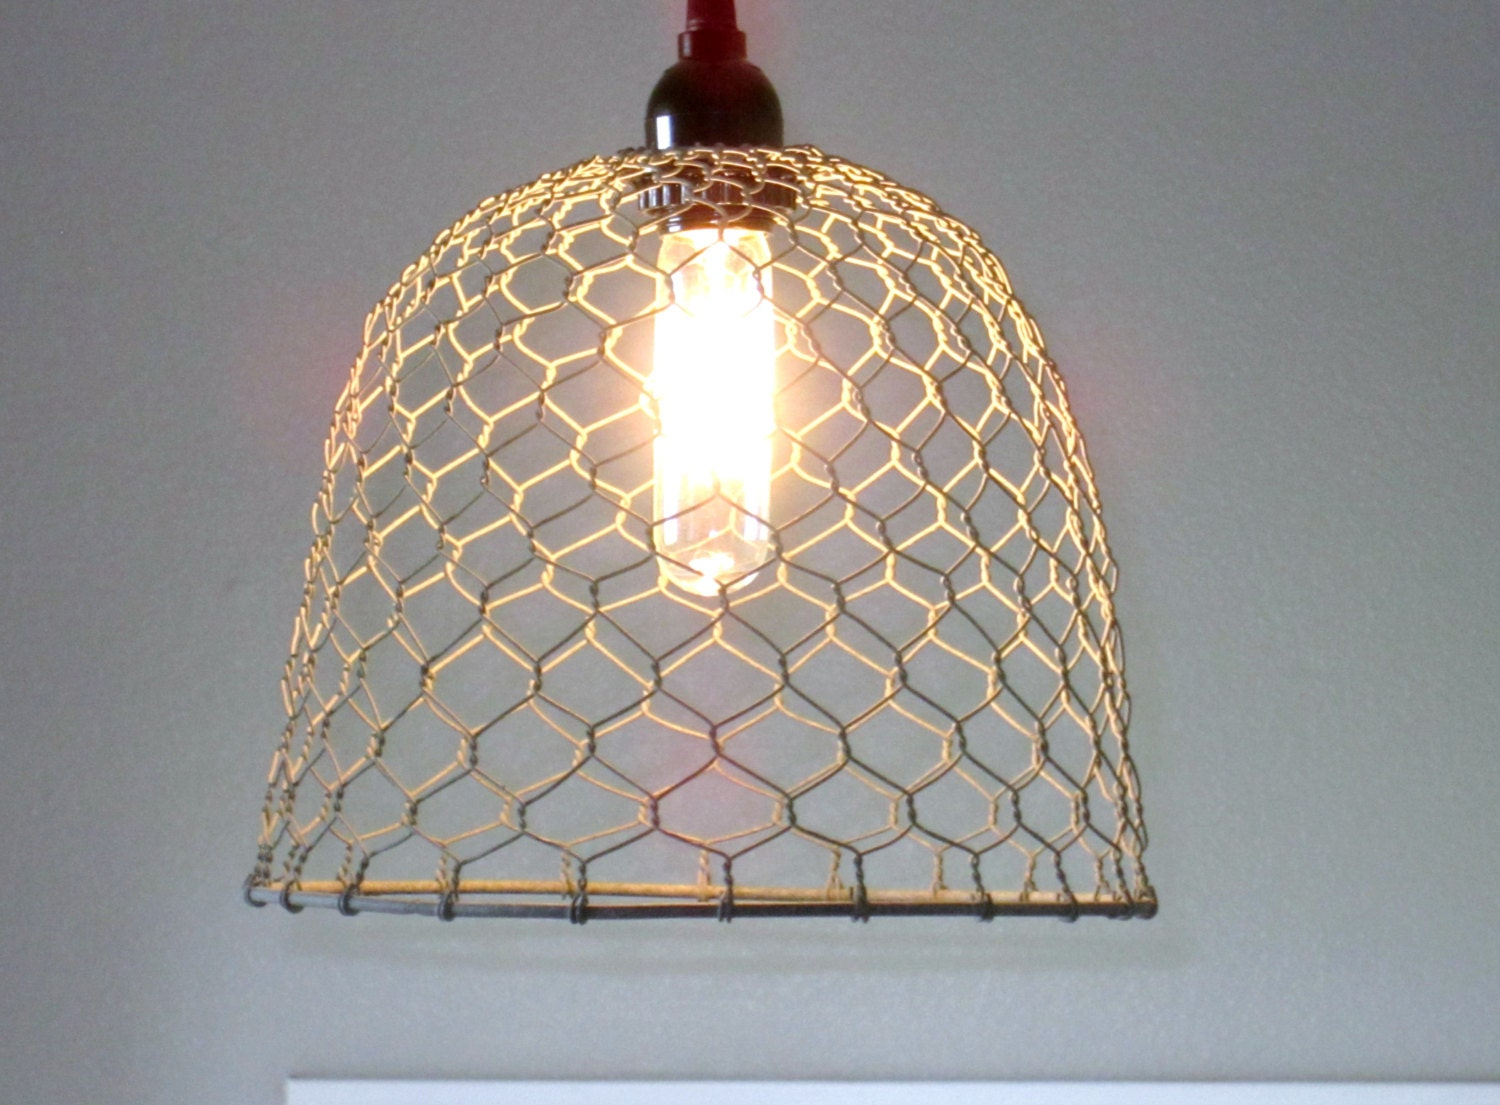 Rustic pendant lighting chicken wire farmhouse pendant zoom aloadofball